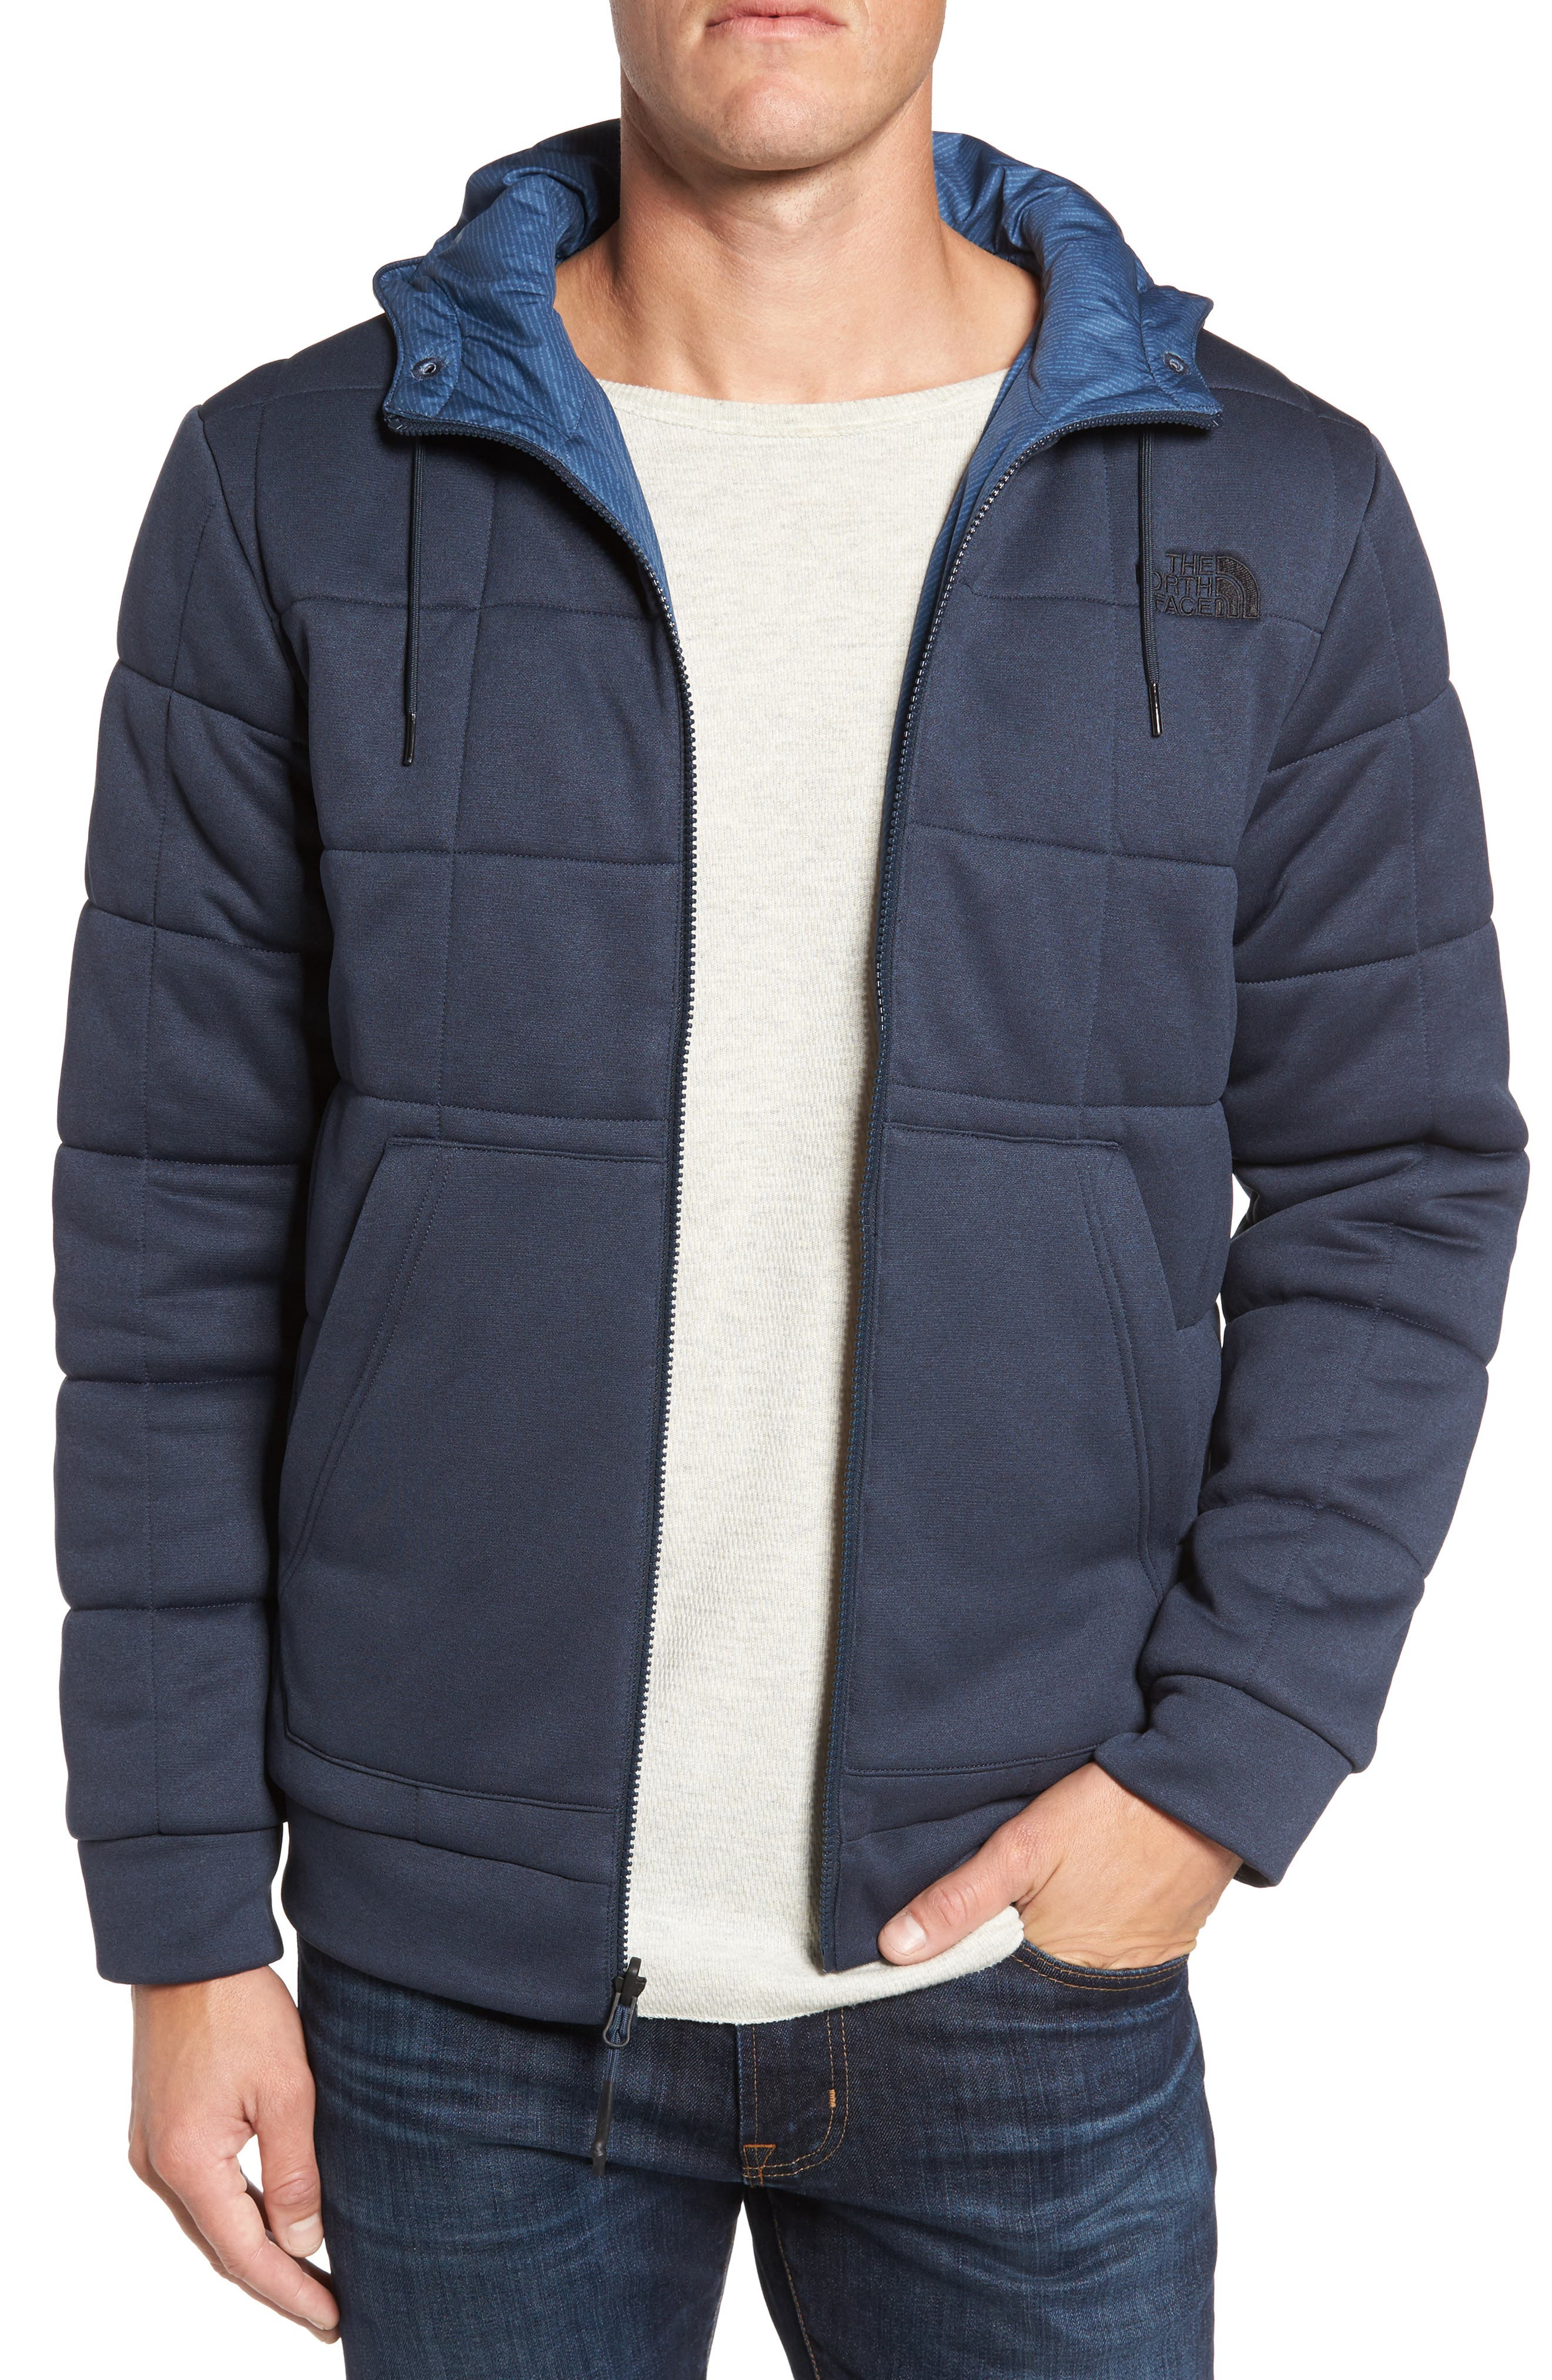 Main Image - The North Face Kingston IV Reversible ThermoBall Jacket